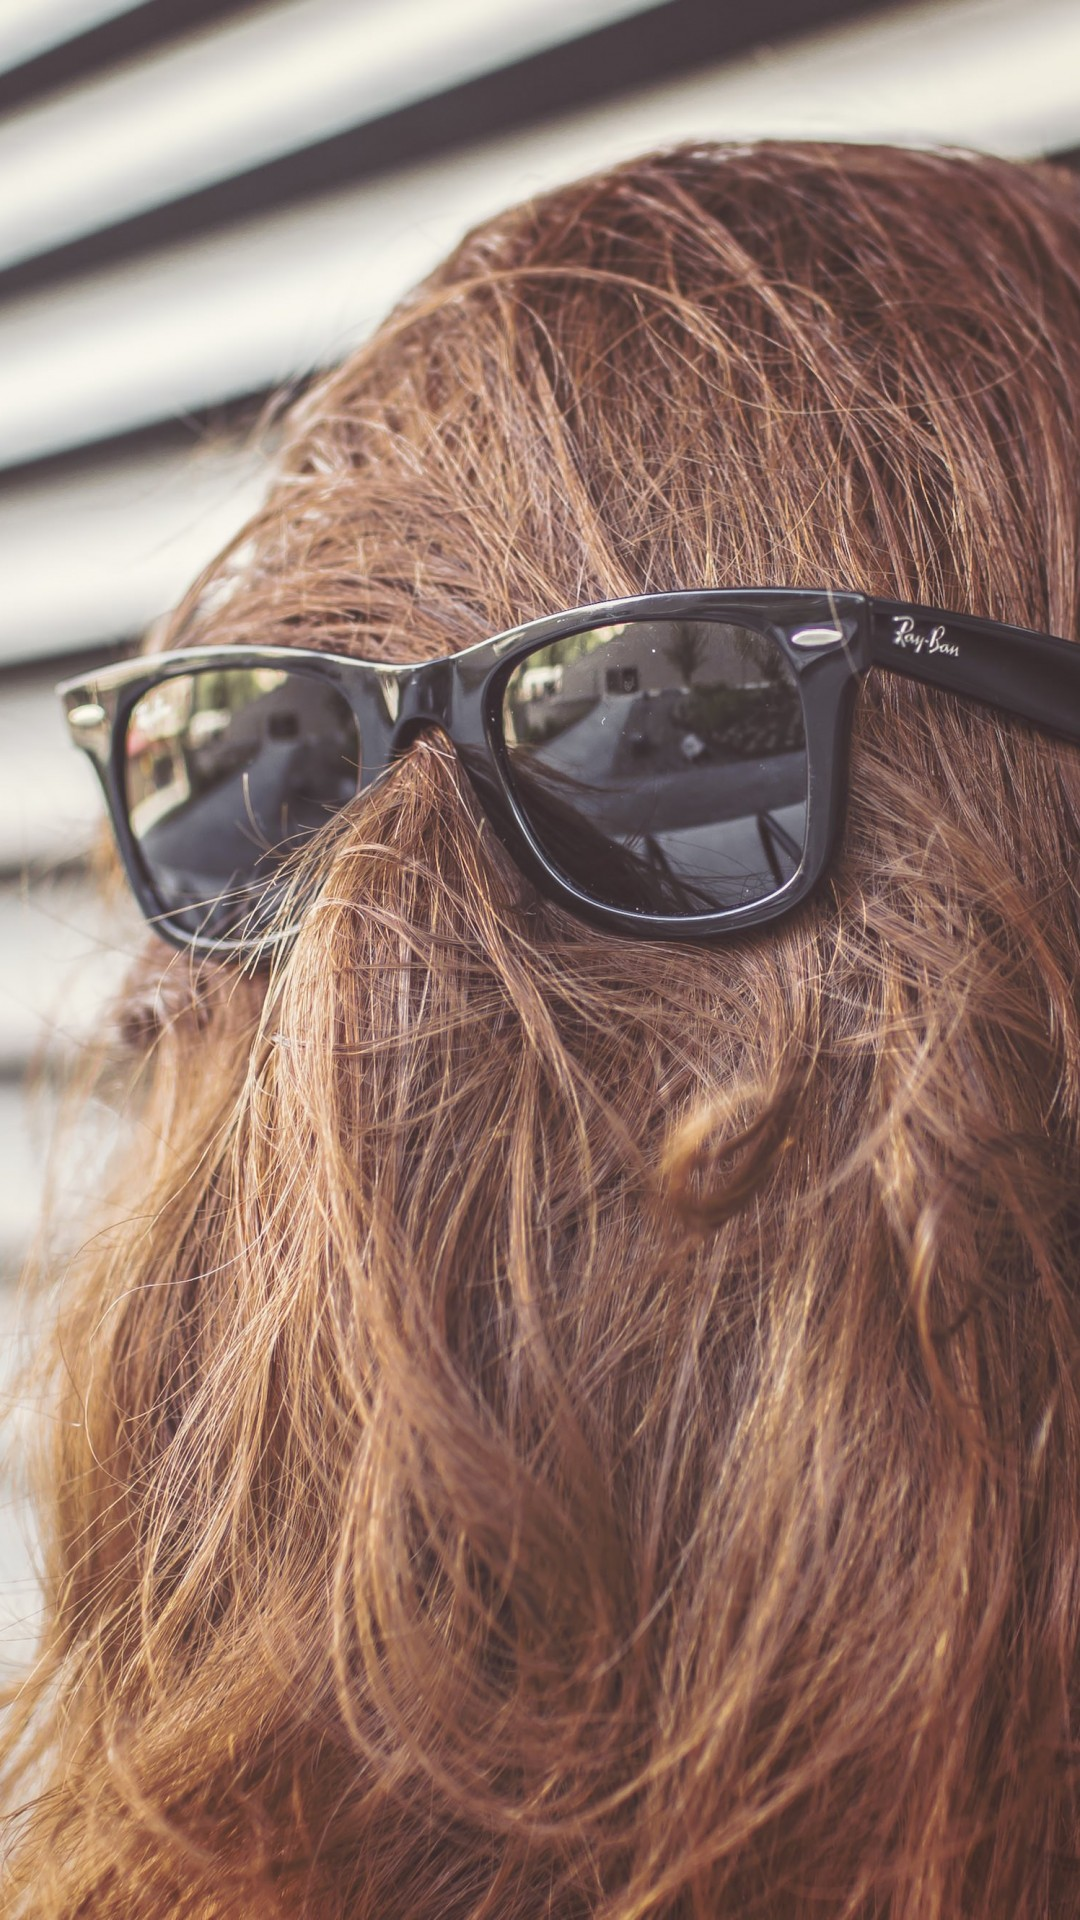 Chewbacca Girl Wallpaper for SAMSUNG Galaxy S4